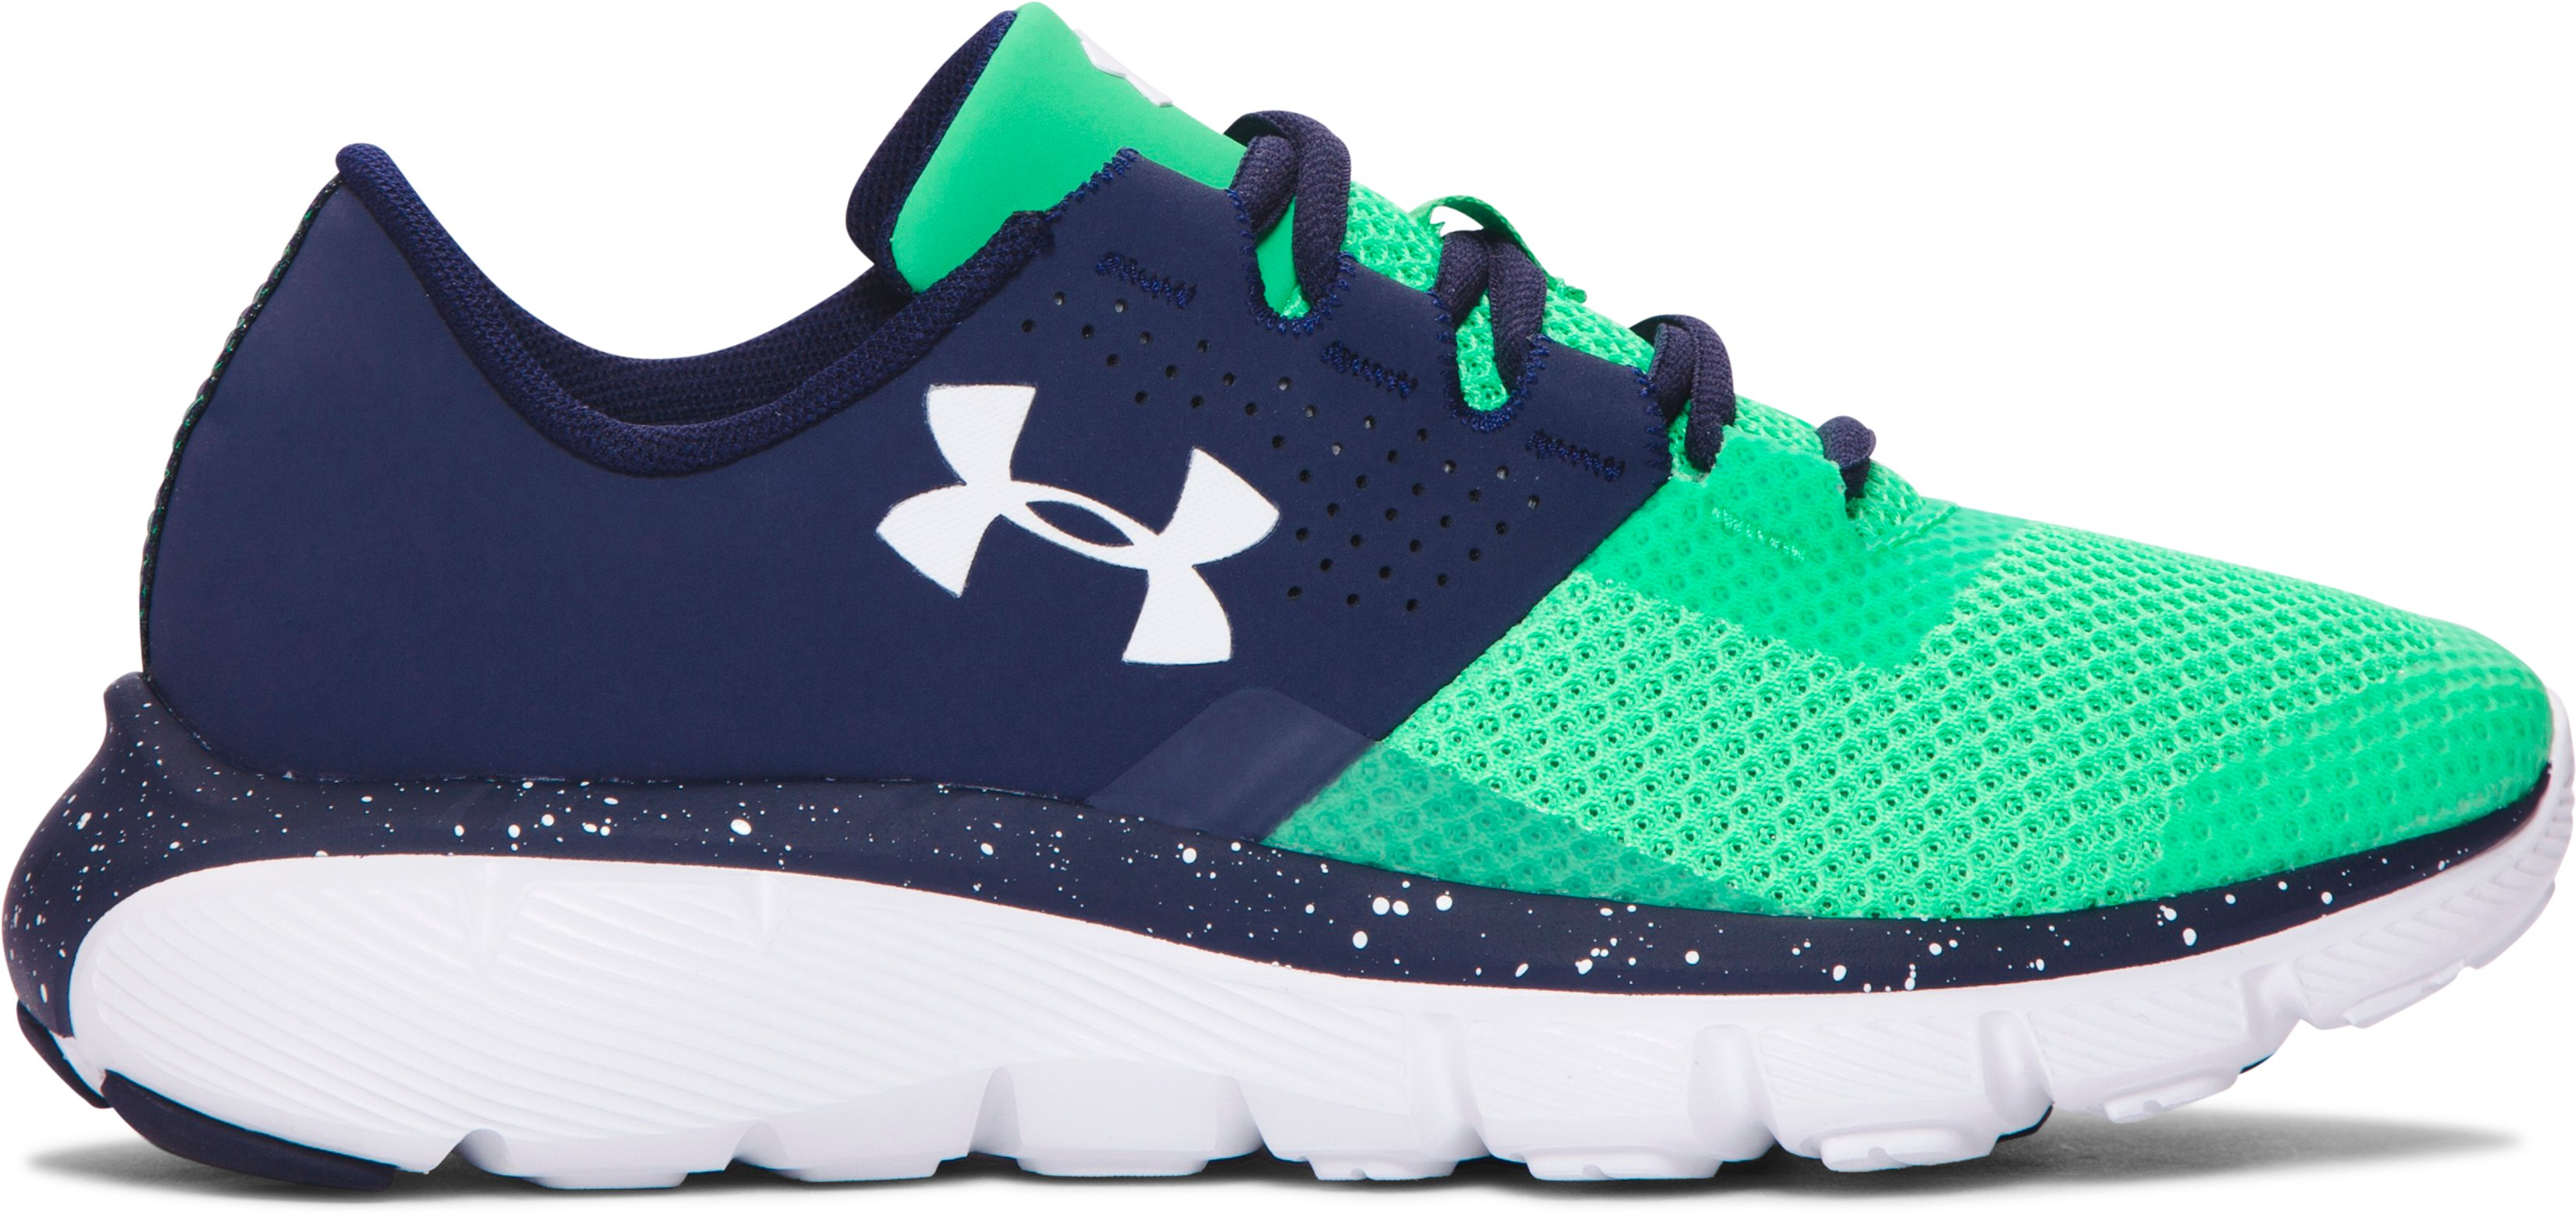 Boys' Grade School UA Fortis 2 Speckle Running Shoes, Midnight Navy, zoomed image